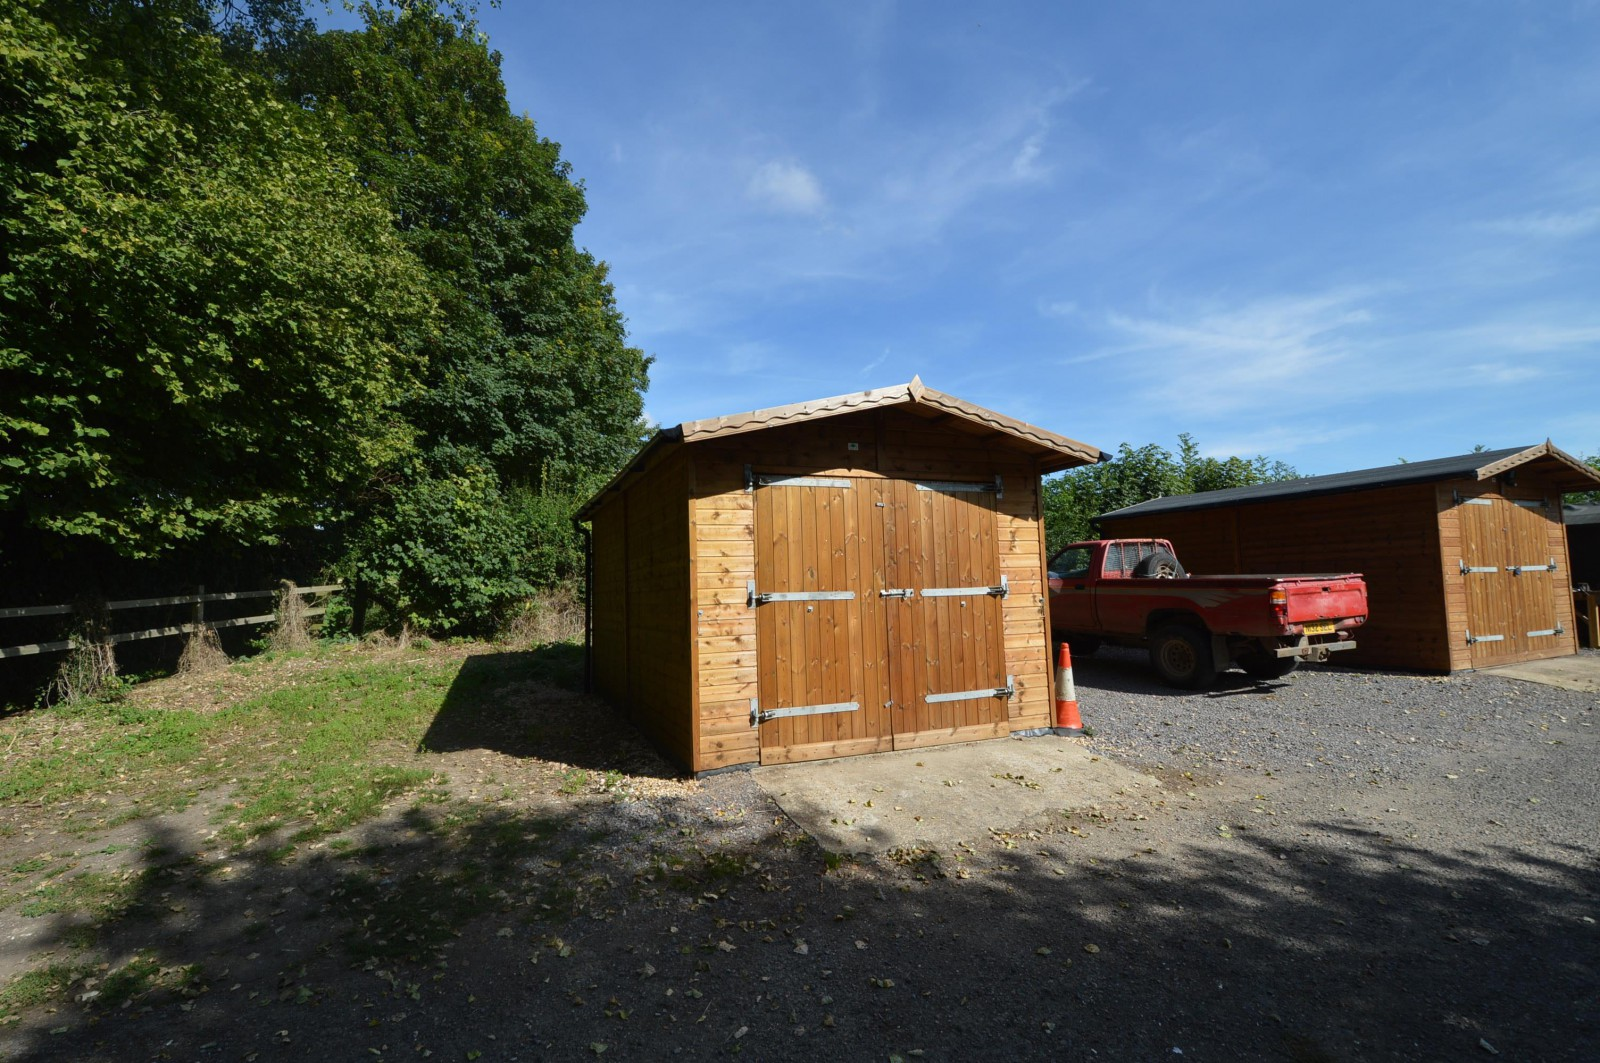 Garage Property to let in West Meon